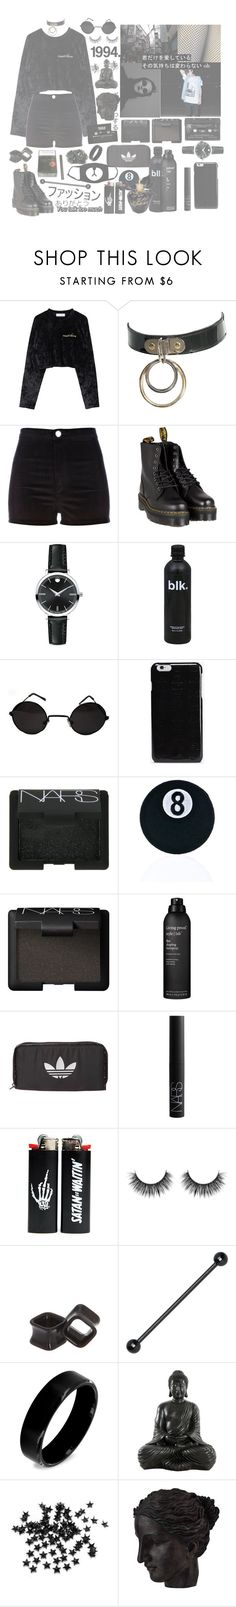 """""""doomed ~ 🎱"""" by askingmychempilots ❤ liked on Polyvore featuring River Island, Dr. Martens, Floyd, Movado, Retrò, Maison Margiela, NARS Cosmetics, C&D Visionary, Living Proof and adidas Originals"""